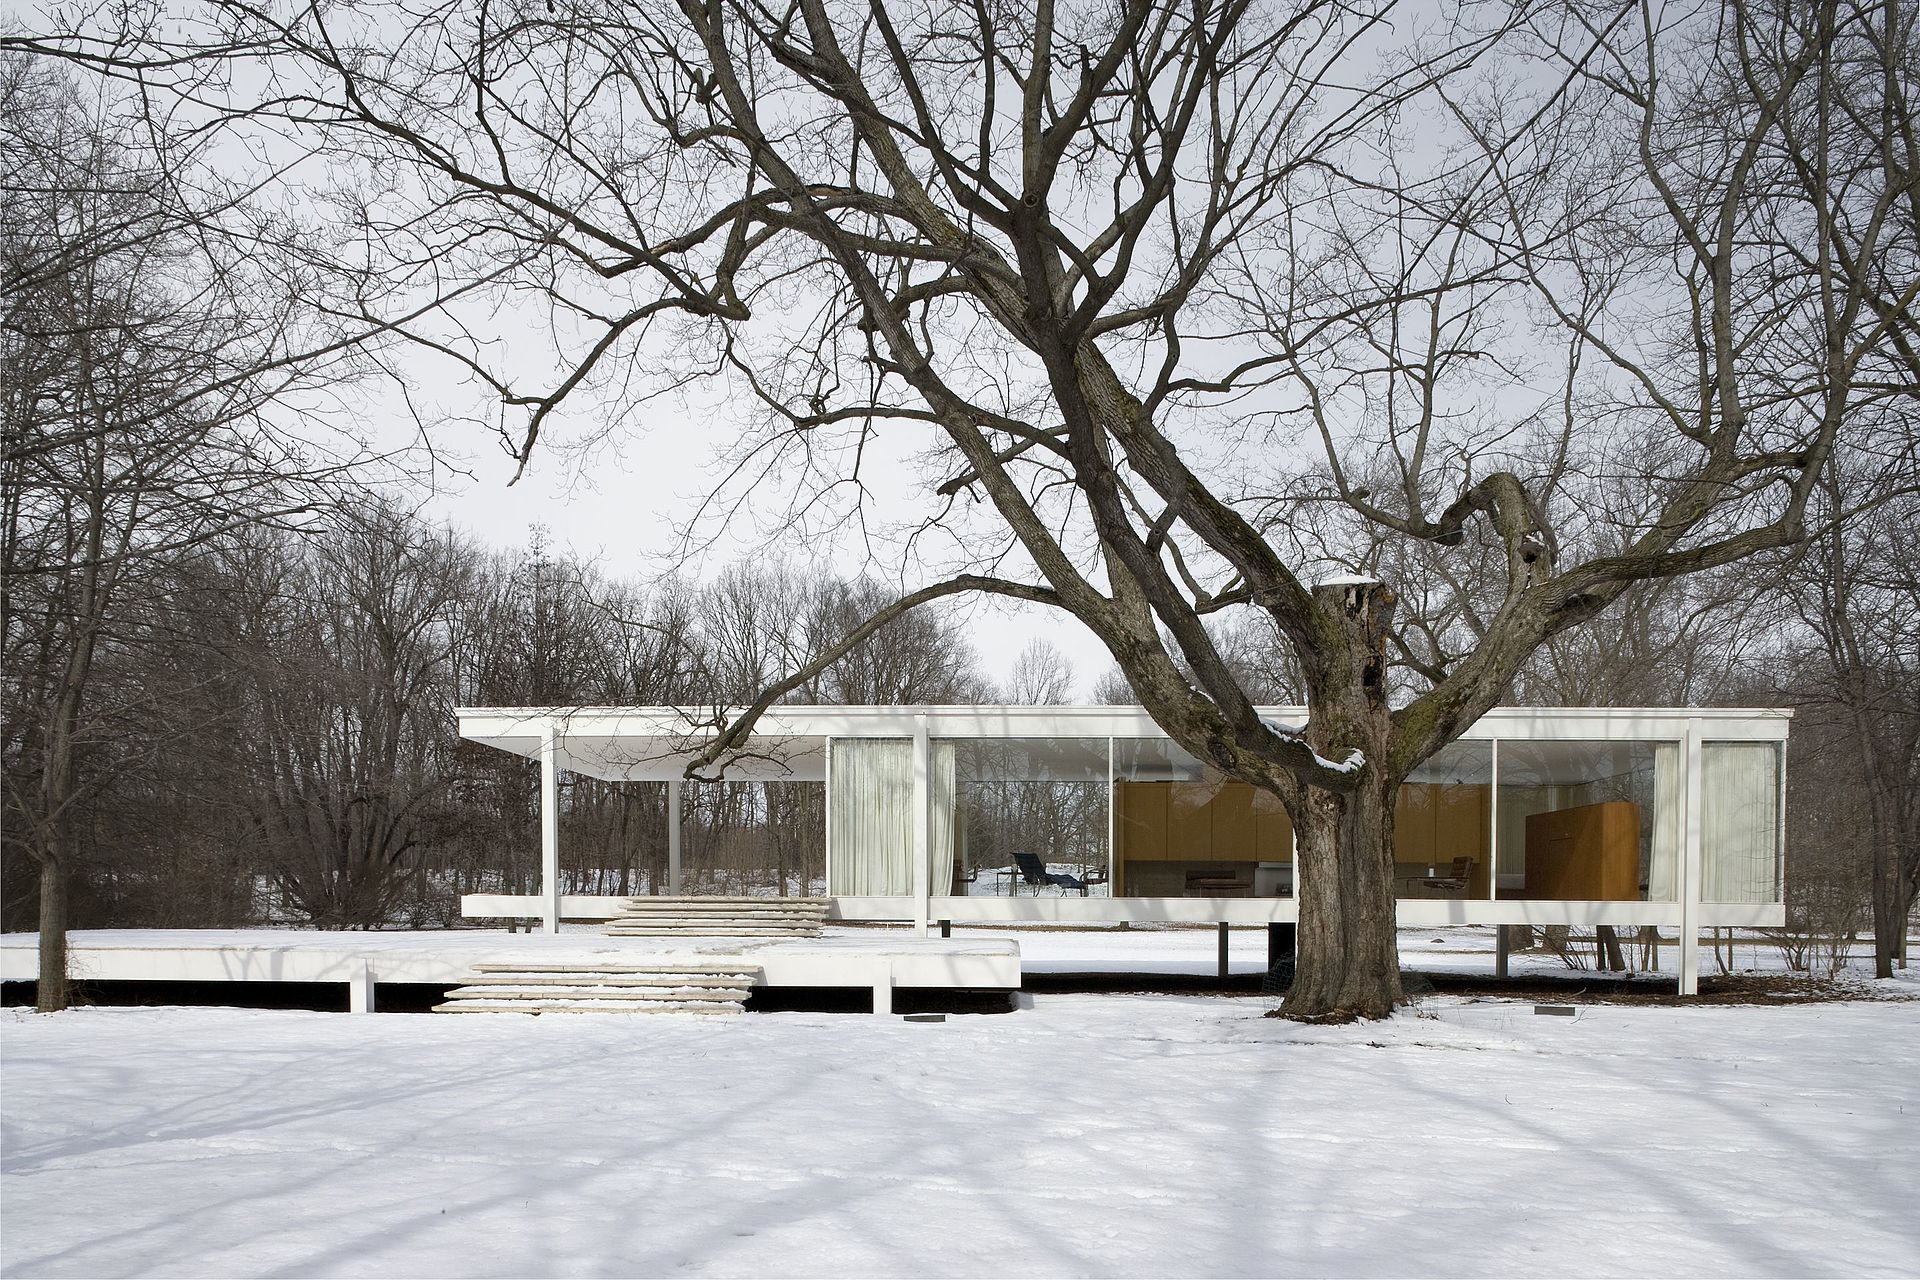 https://upload.wikimedia.org/wikipedia/commons/thumb/e/e1/Farnsworth_House_2006.jpg/1920px-Farnsworth_House_2006.jpg